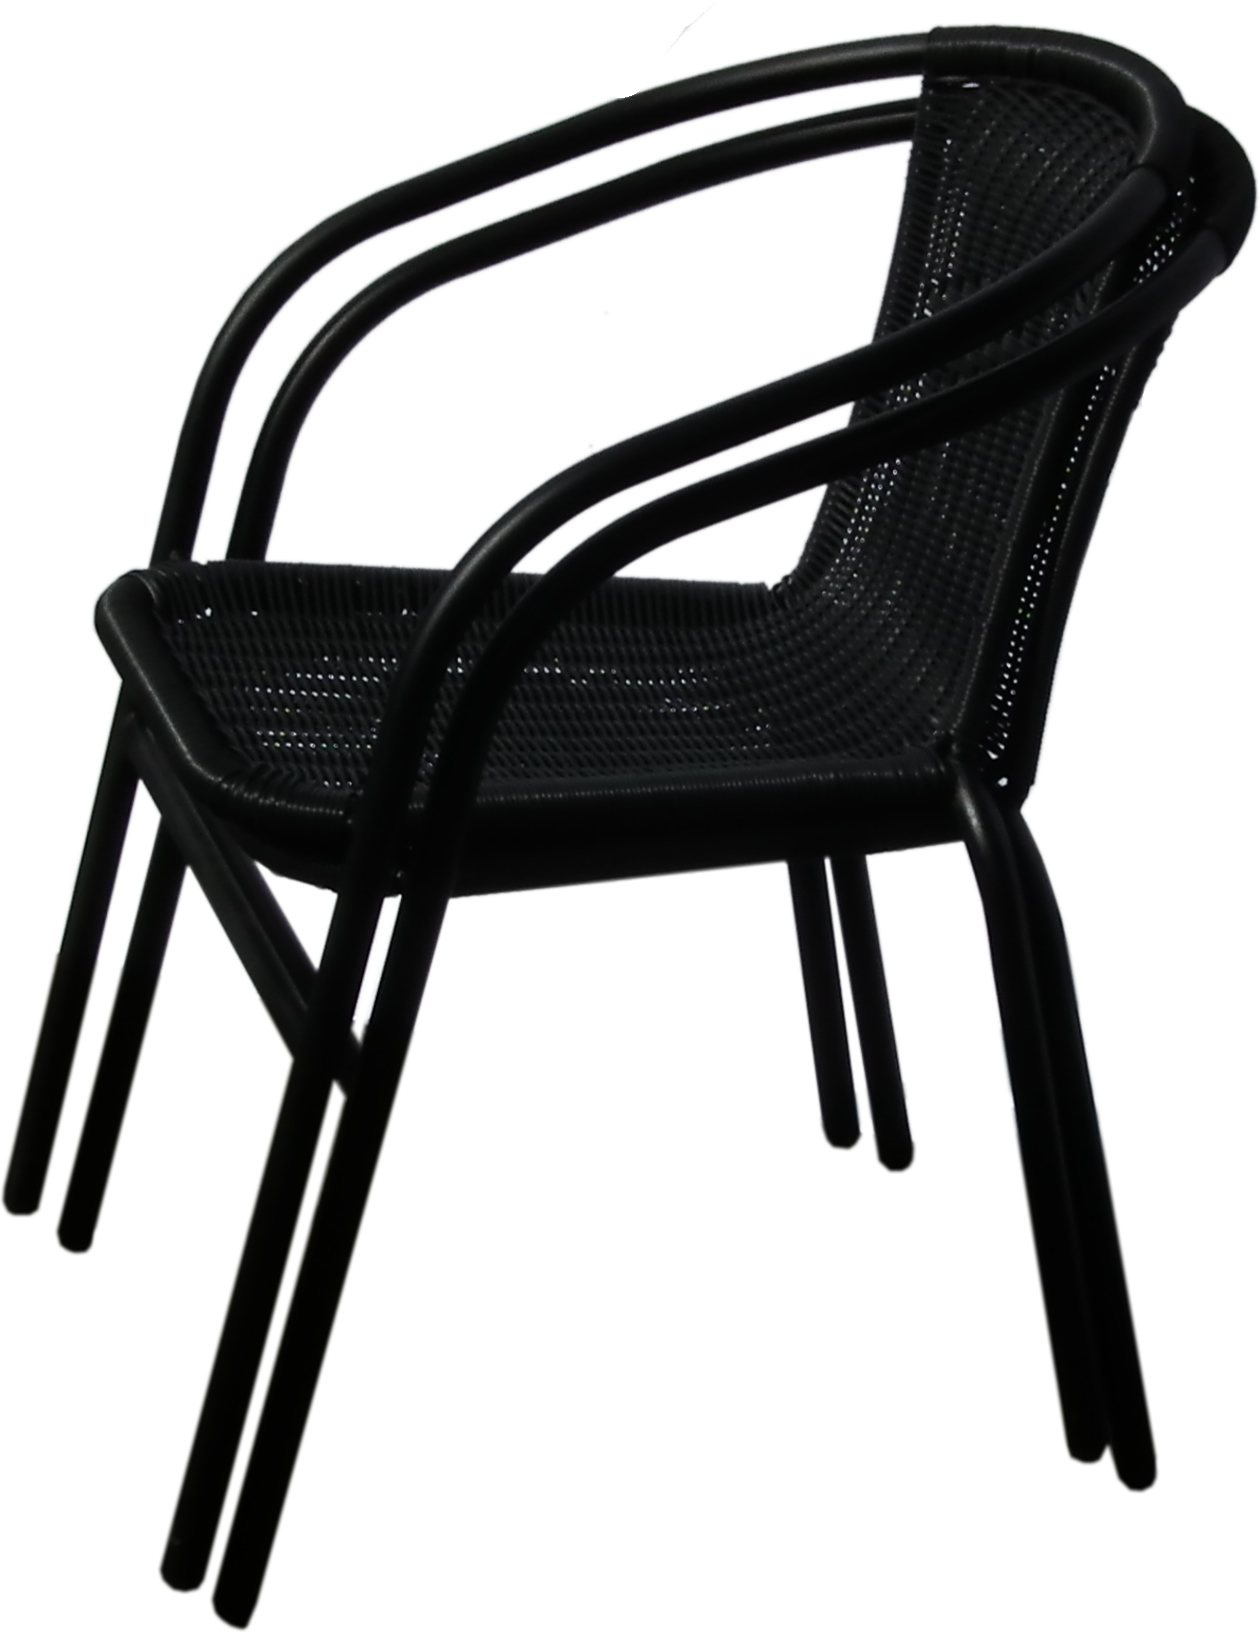 Black Metal Patio Chairs Black Outdoor Wicker Rattan Bistro Chair Metal Frame Woven